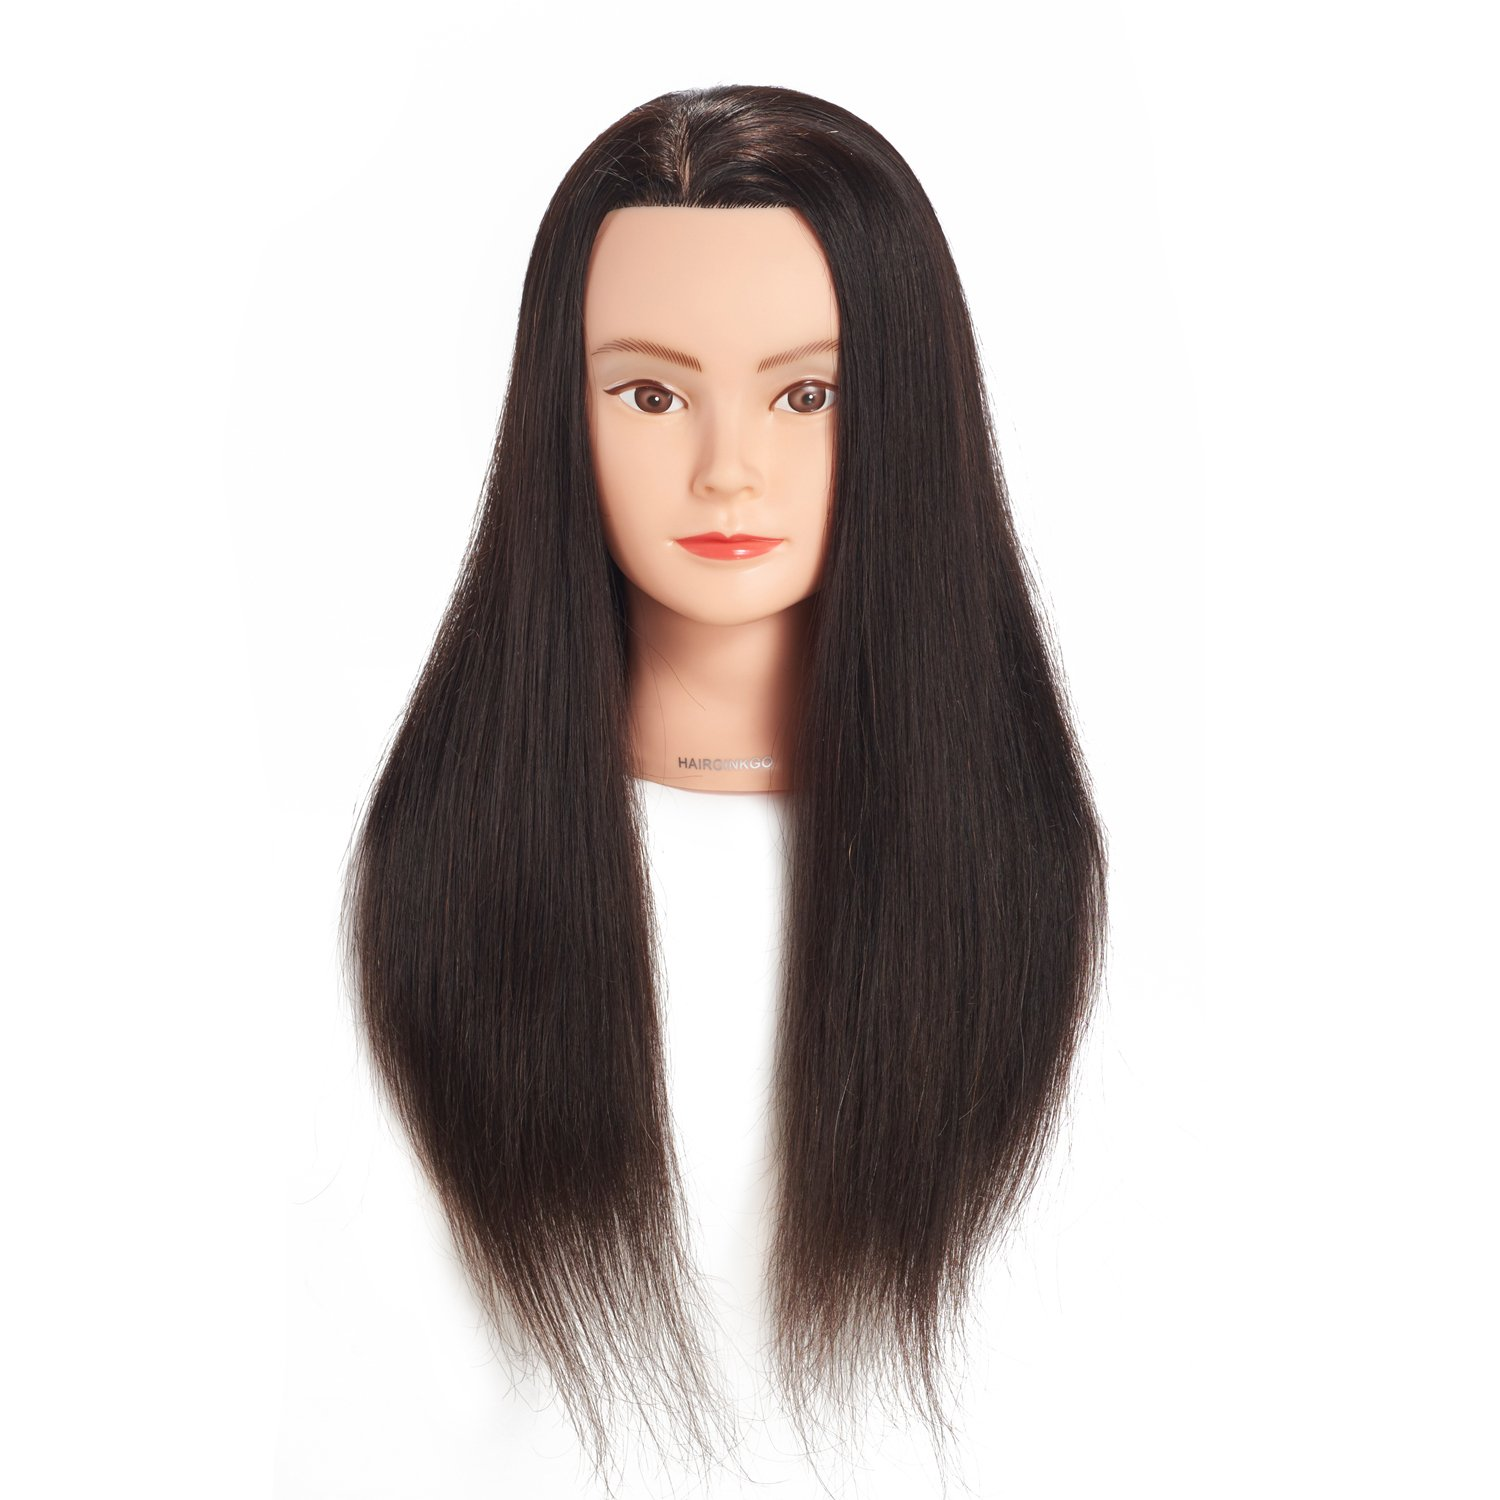 Hairginkgo 20-22 100% Human Hair Cosmetology Mannequin Manikin Training Head Doll Head With Free Clamp (92018B0218)